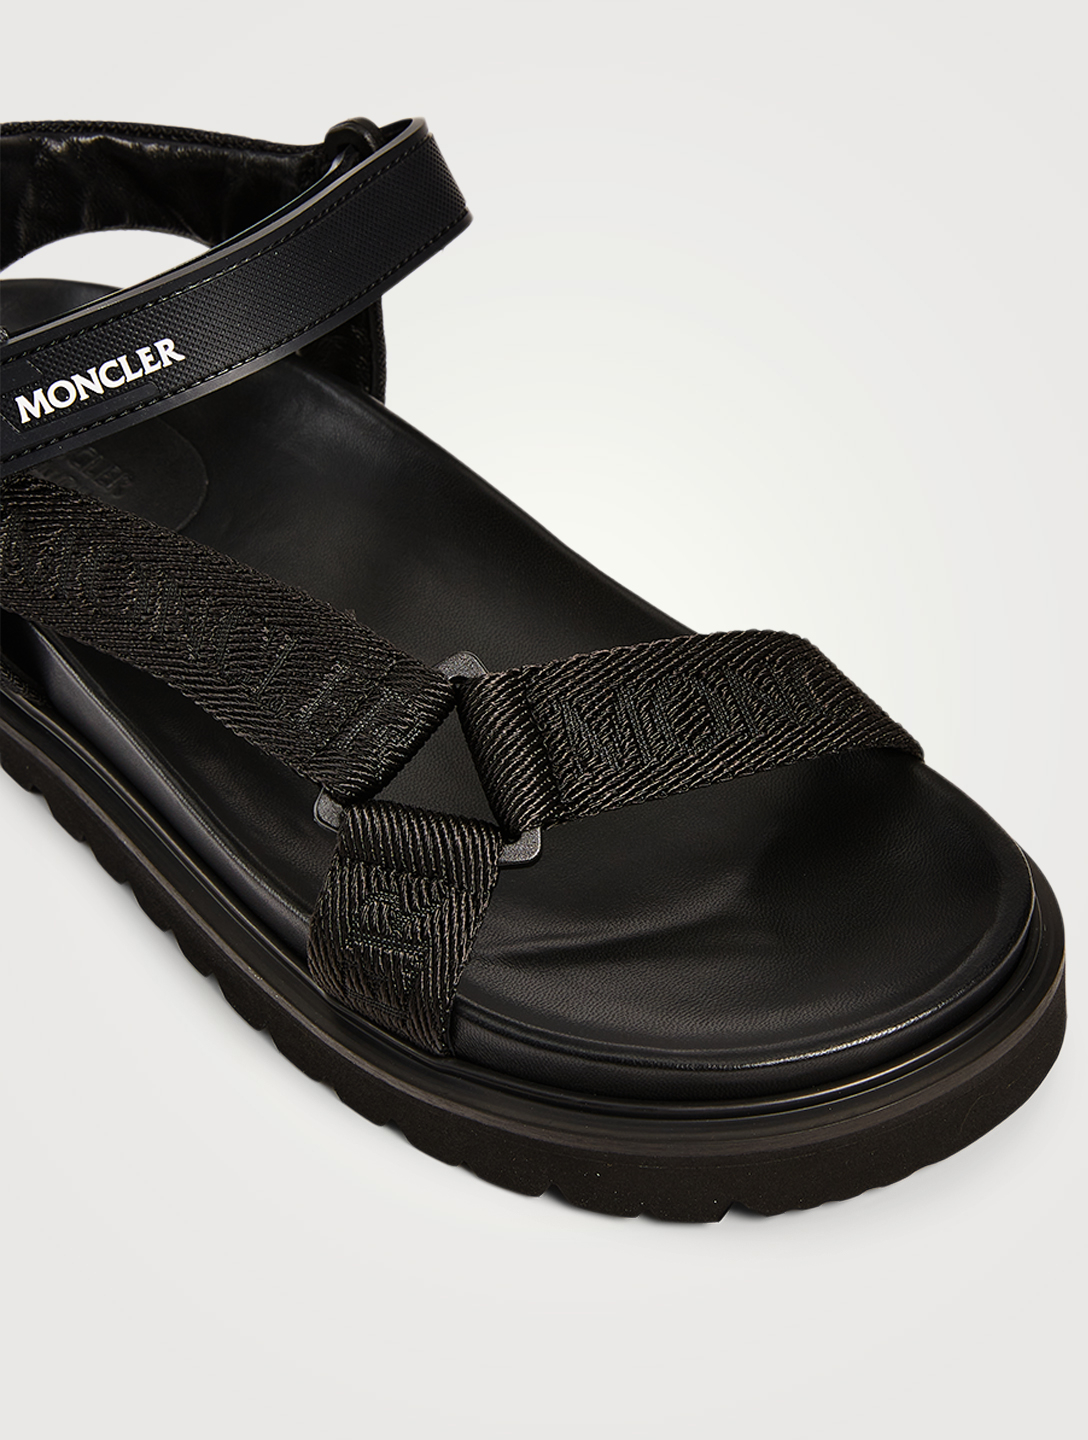 MONCLER Flavia Technical Webbing Sandals With Logo Strap Women's Black